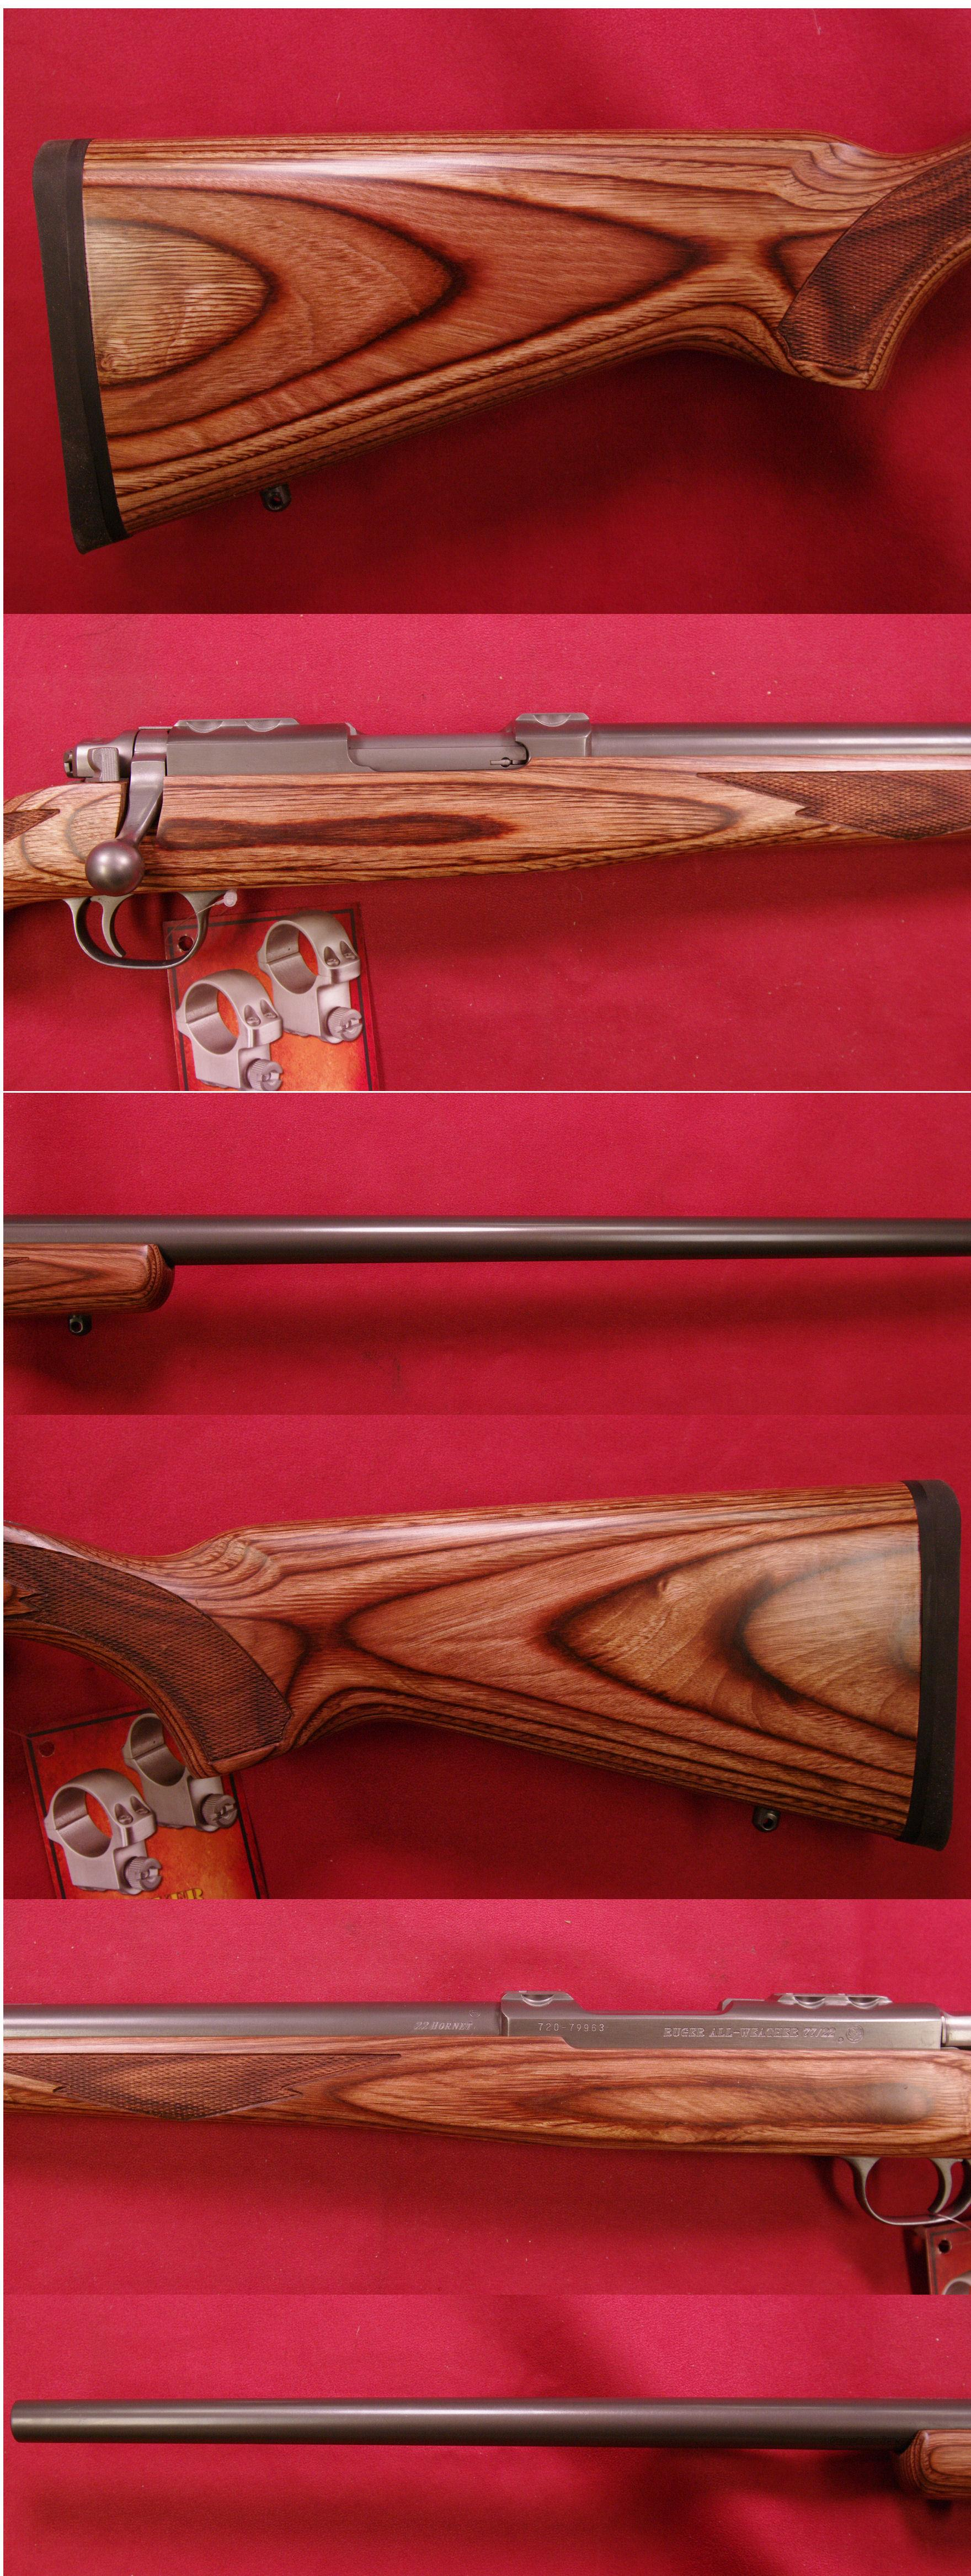 RUGER Model 77/22 .22 Hornet  Guns > Rifles > Ruger Rifles > Model 77